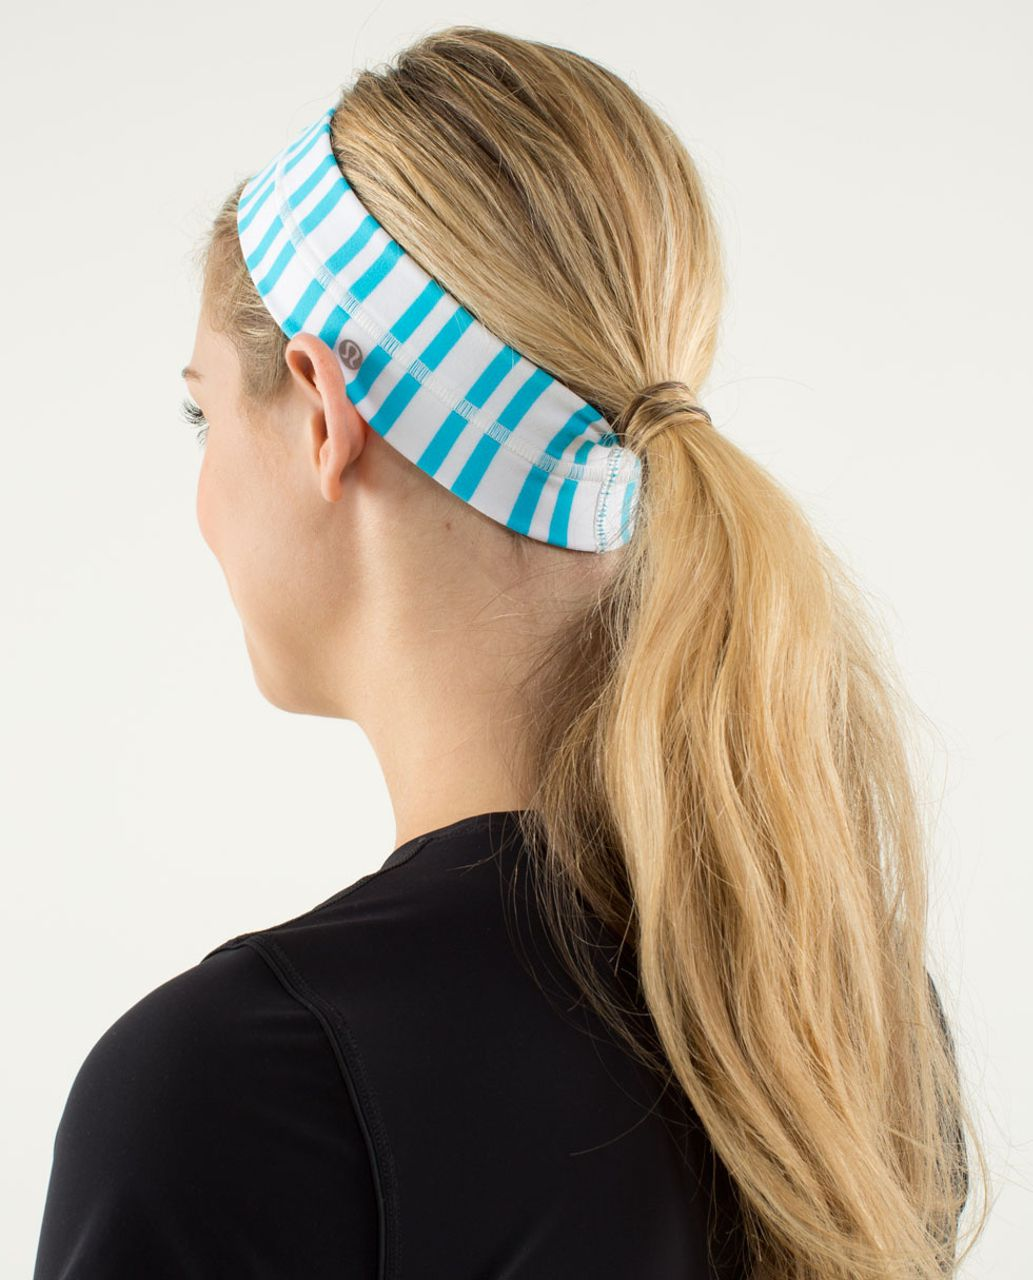 Lululemon Fly Away Tamer Headband - Twin Stripe Spry Blue